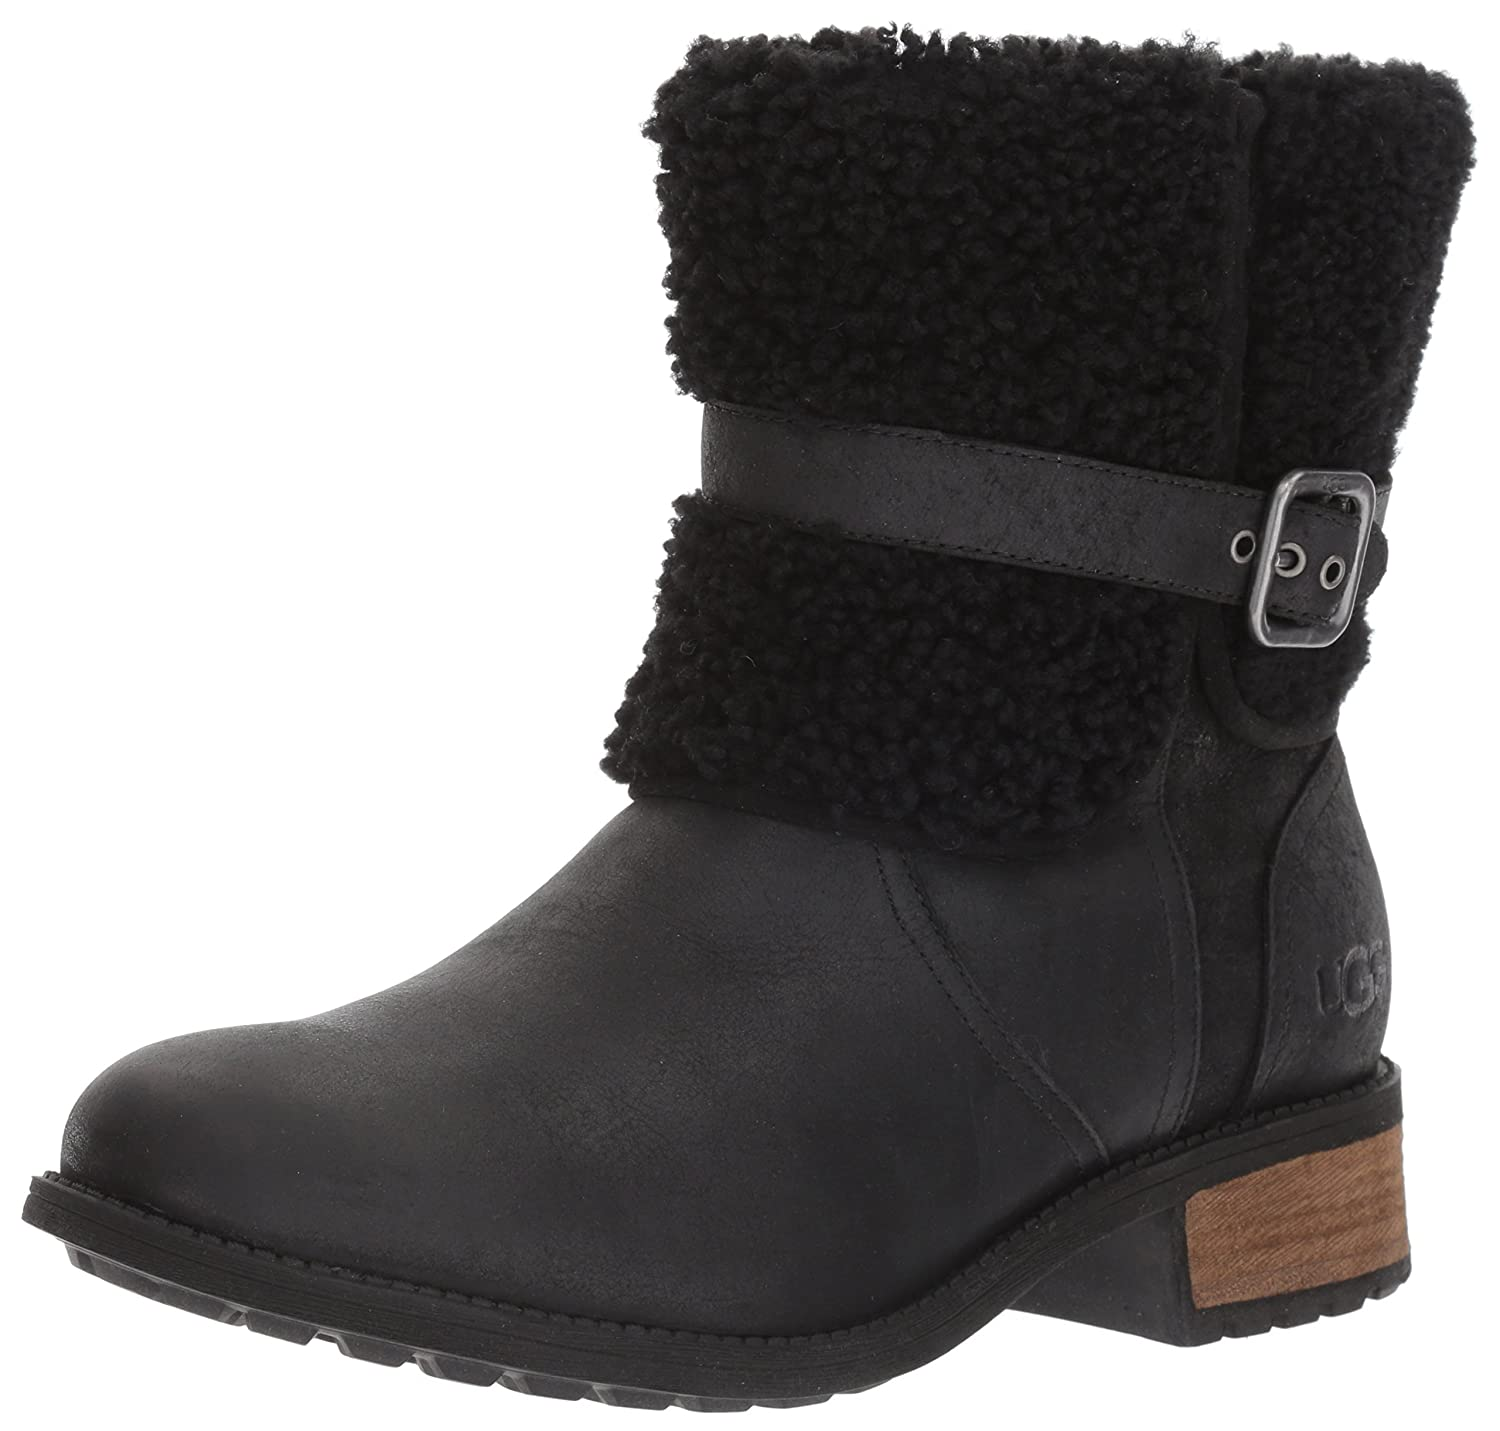 4cae52483a9 UGG Women's Blayre Ii Winter Boot